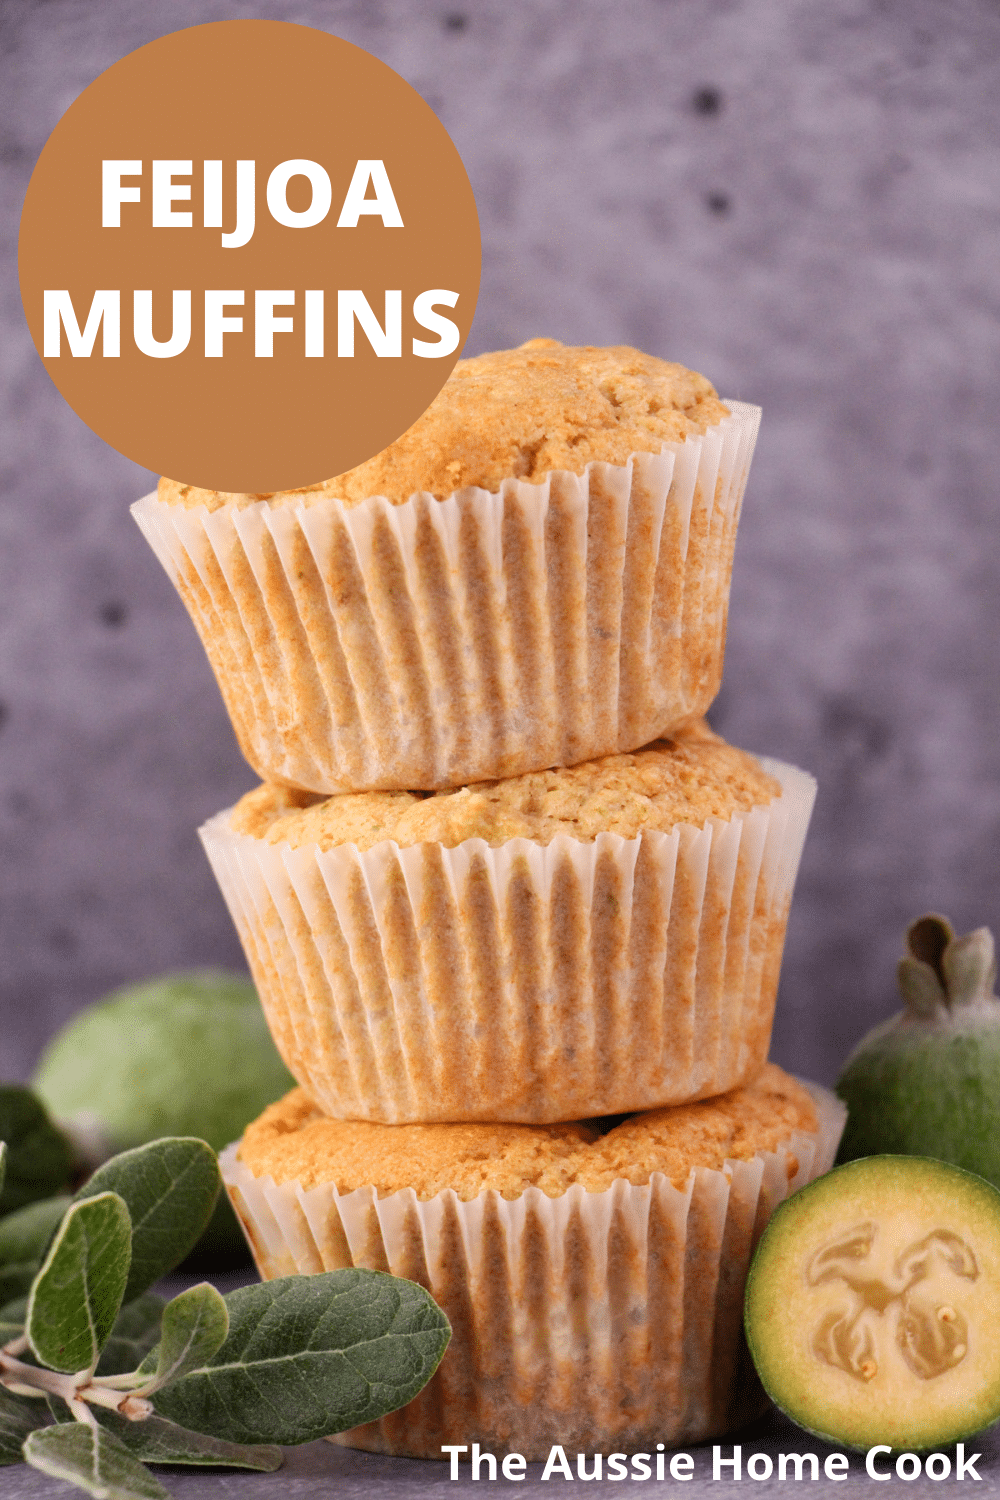 Stack of three feijoa muffins, with fresh feijoas and feijoa leaves and text overlay, feijoa muffins, the aussie home cook.